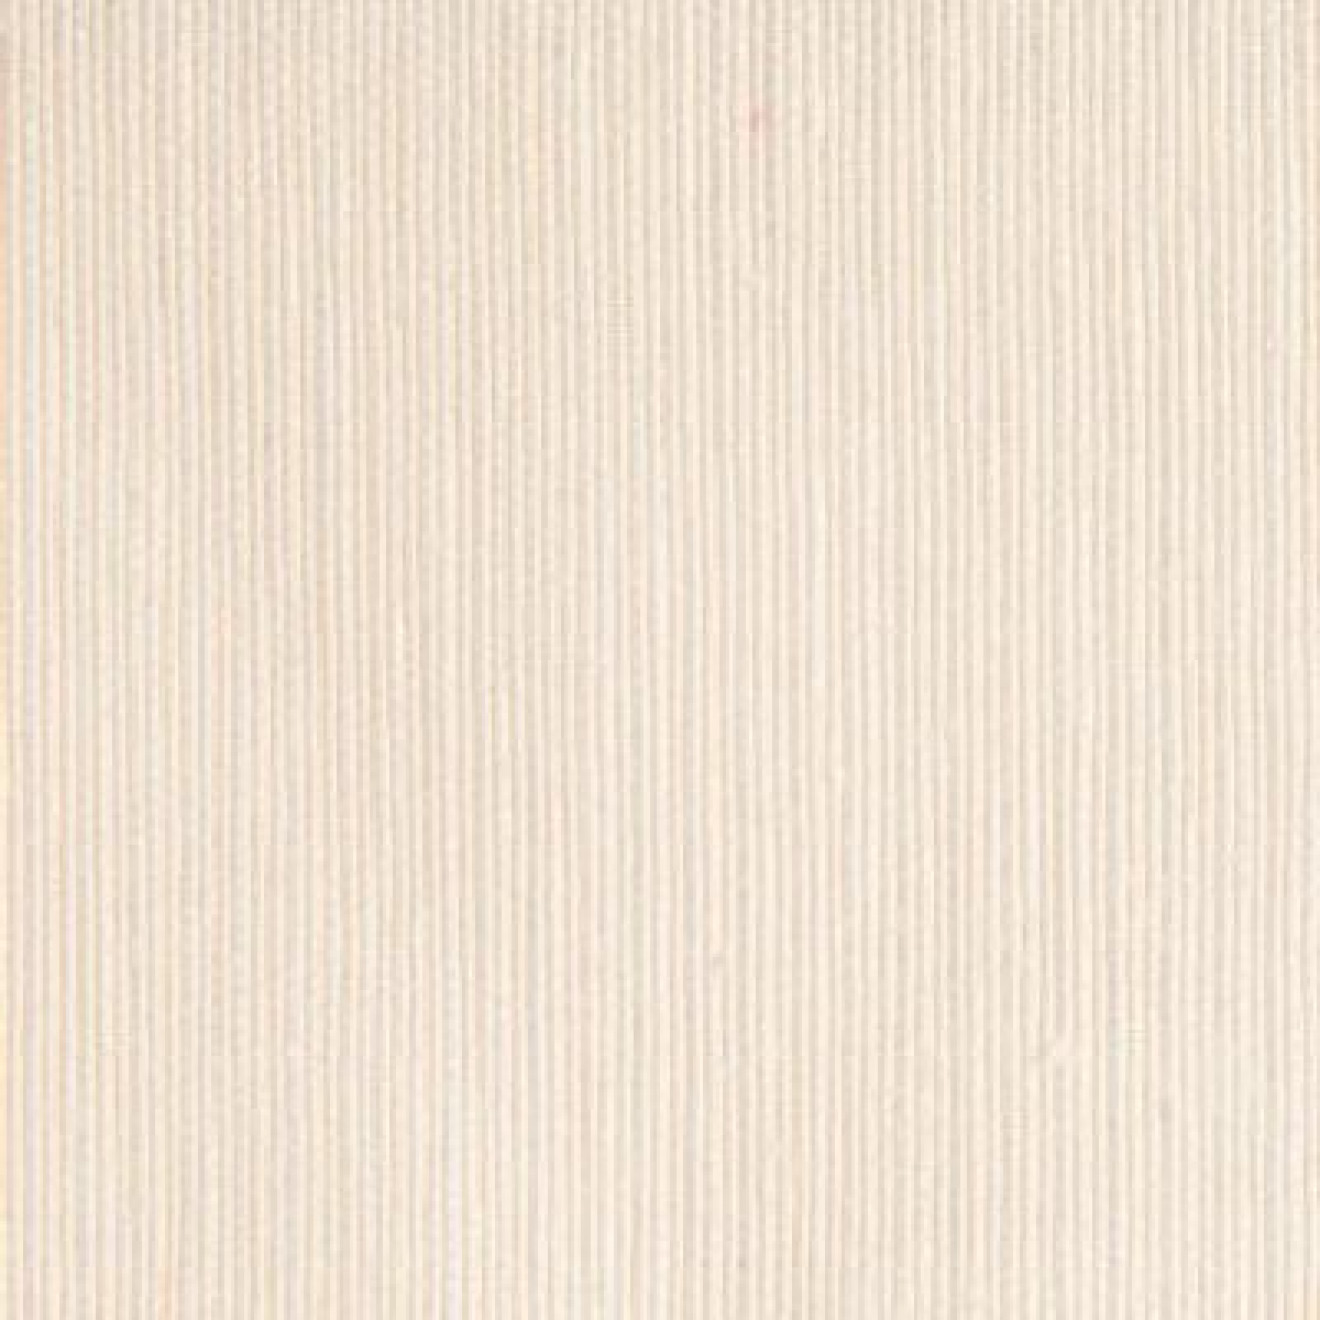 Rolle - Acrylstoff Loneta Color 104